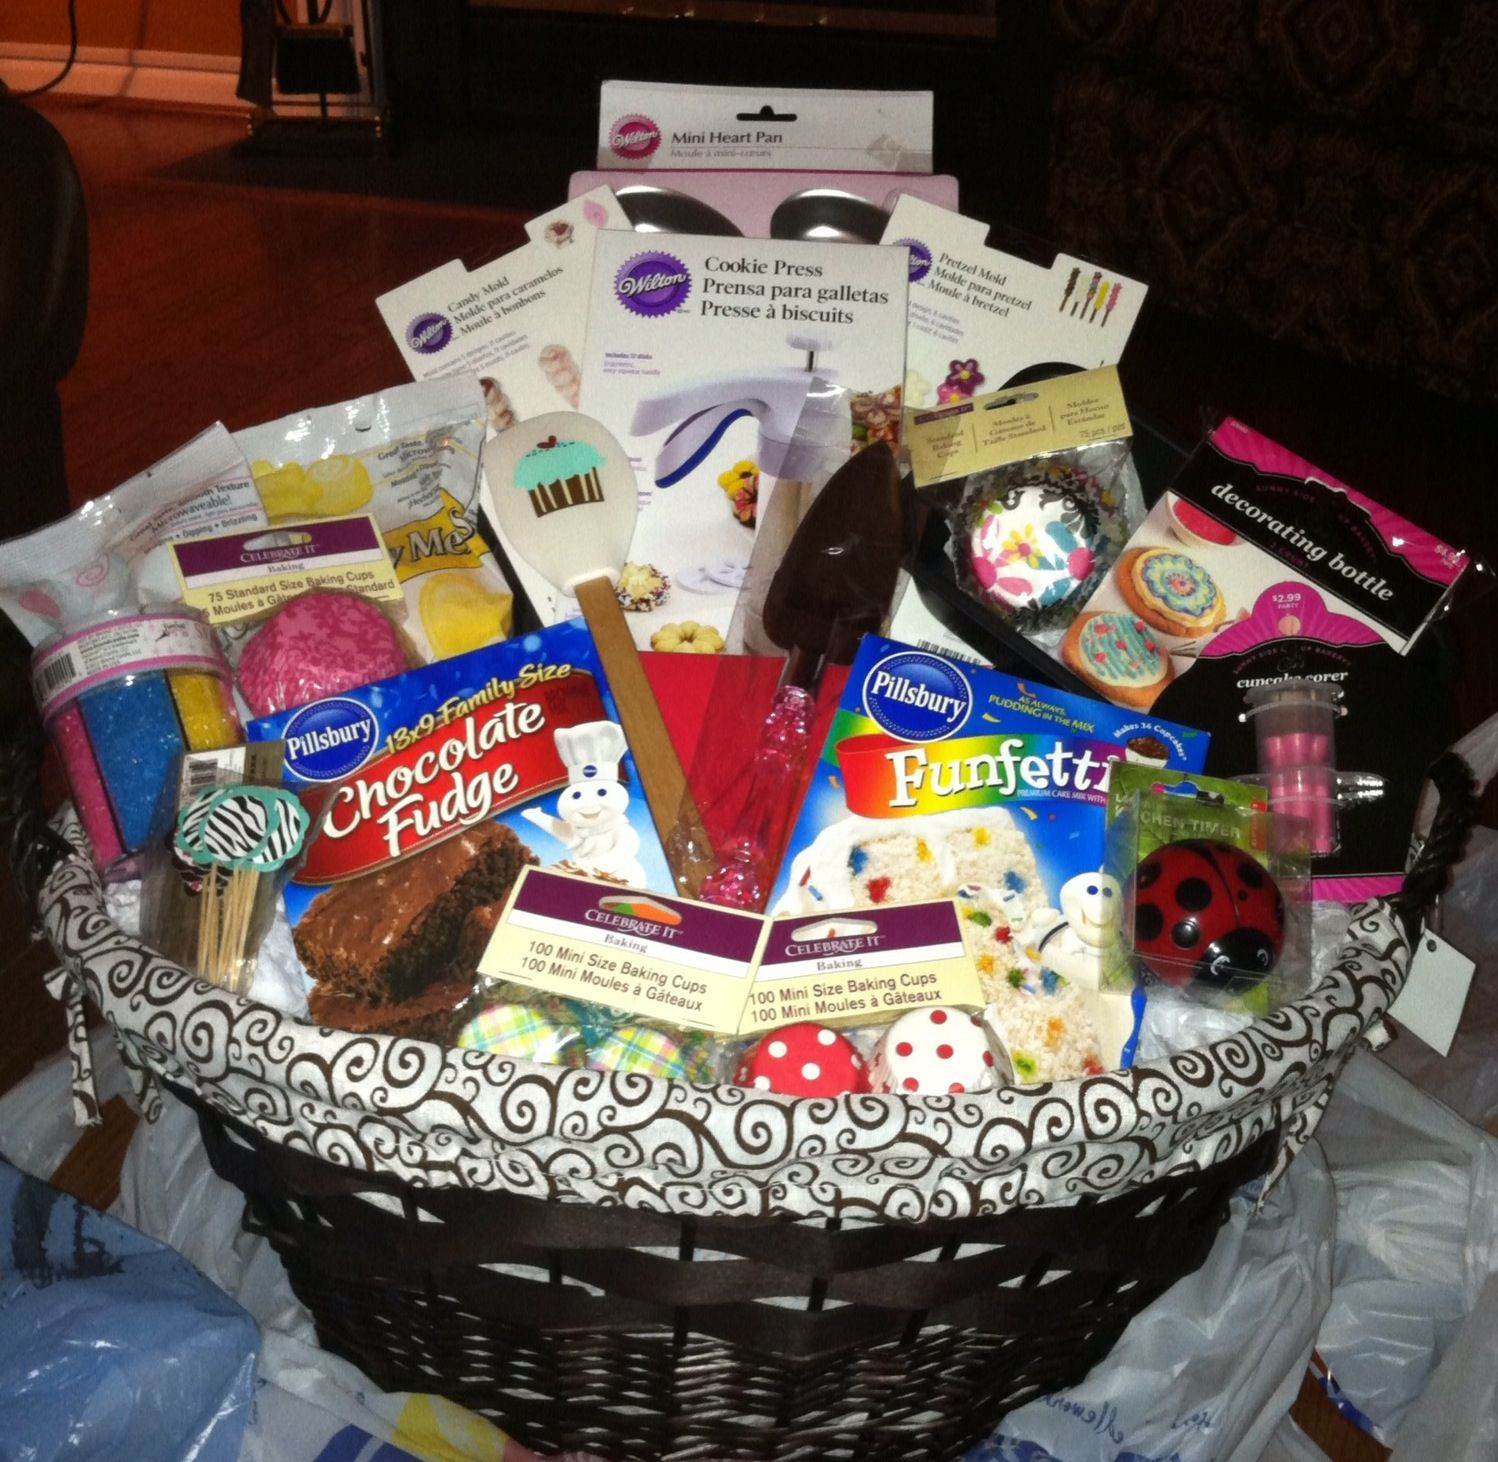 Baking Gifts For Christmas  Best 25 Baking t baskets ideas on Pinterest